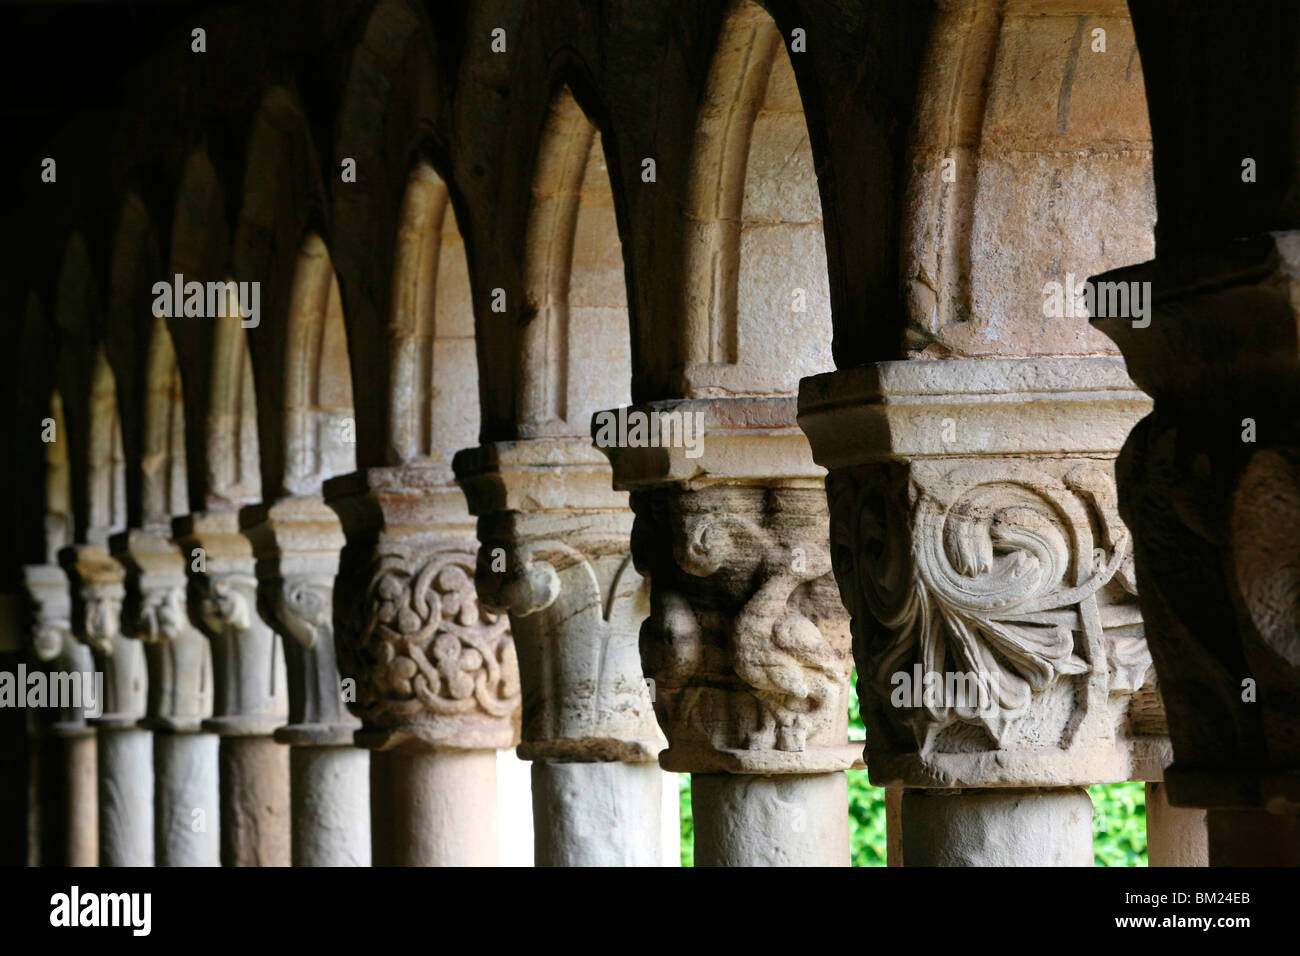 Santillana del Mar Collegiate Church cloister, Santillana del Mar, Cantabria, Spain, Europe - Stock Image